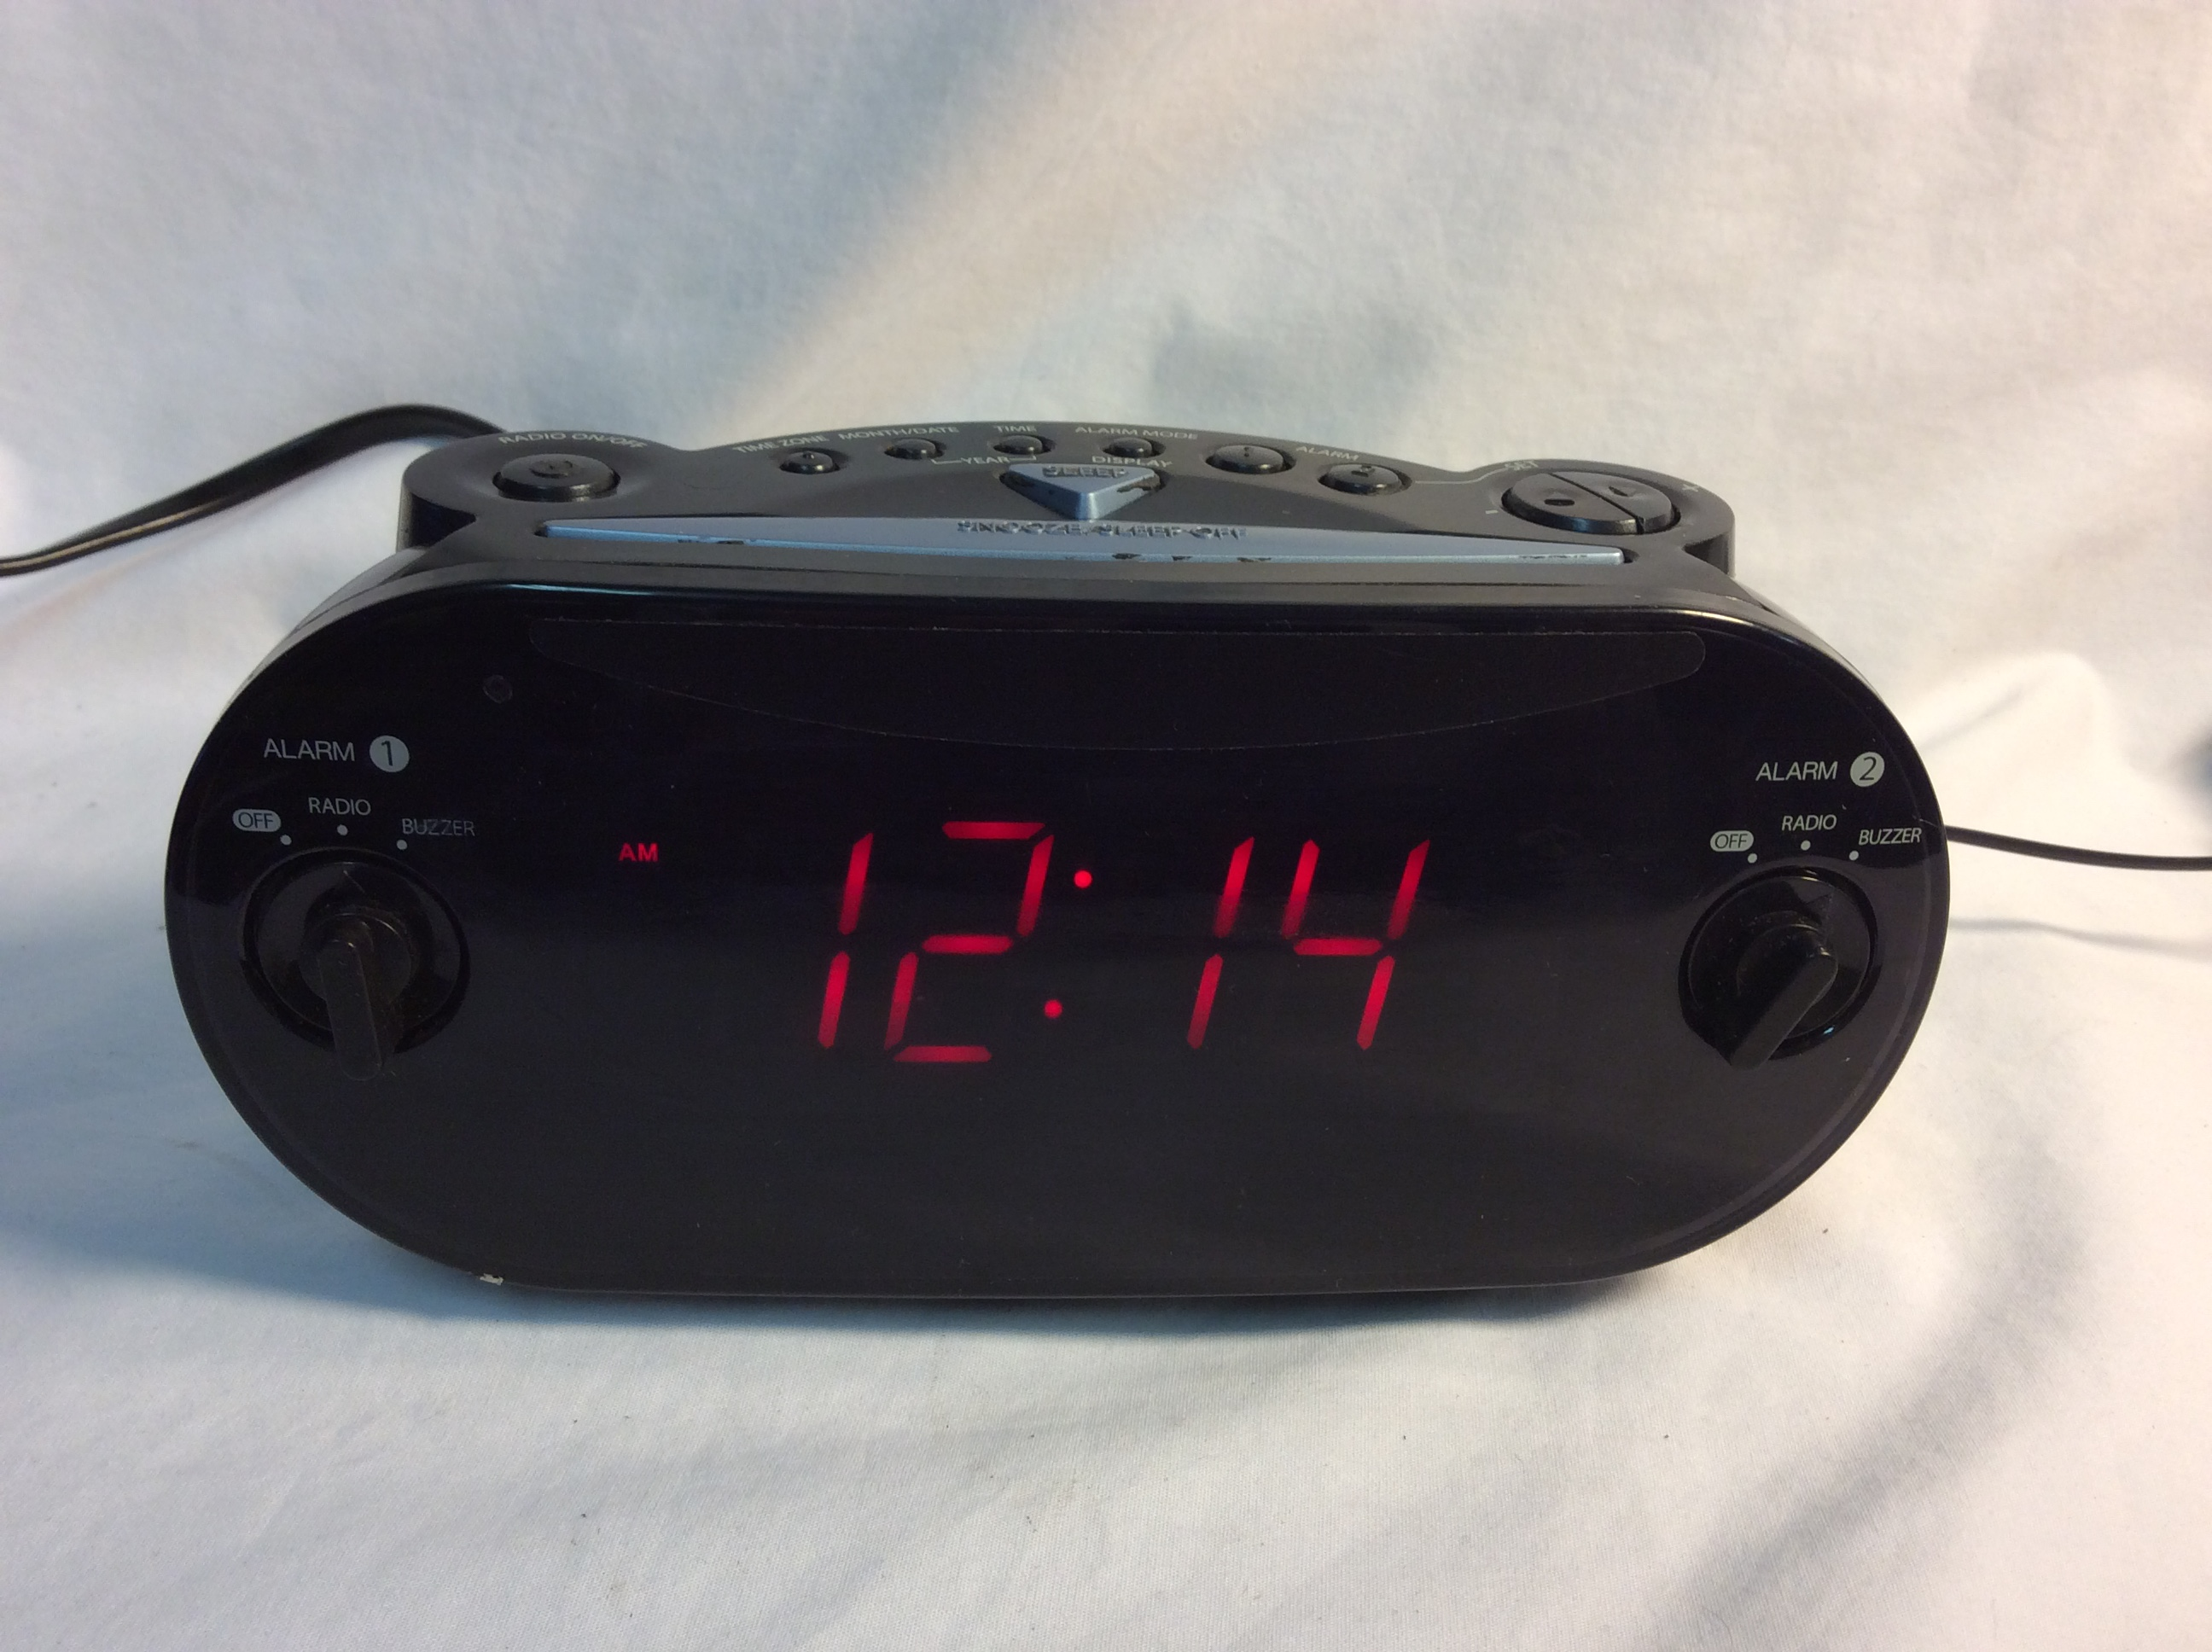 Rigged digital alarm clock